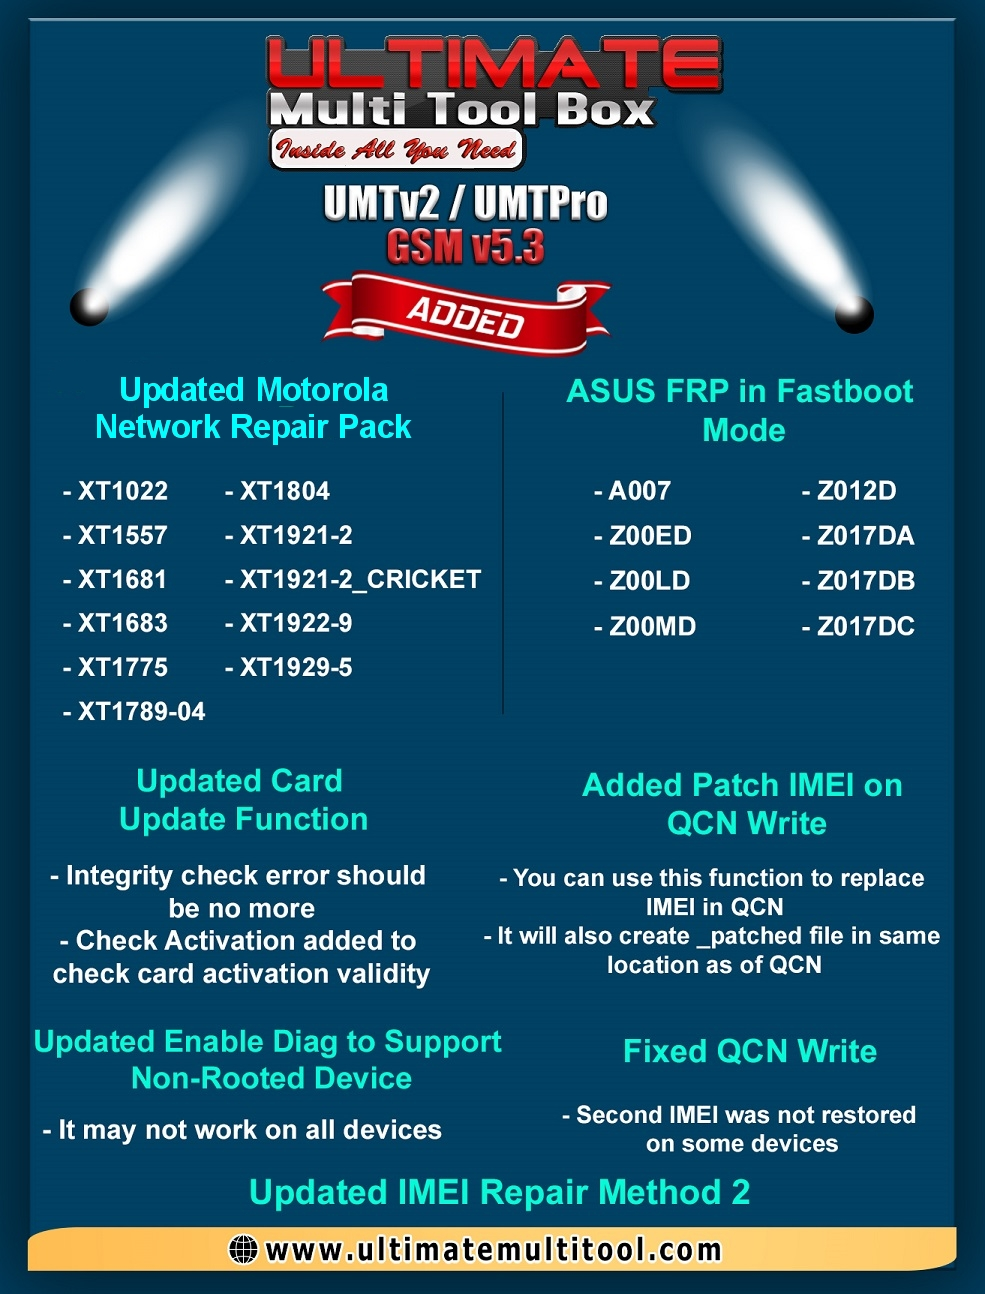 [20-05-19] UMTv2 / UMTPro UltimateGSM v5.3 - ASUS FRP in Fastboot and more...